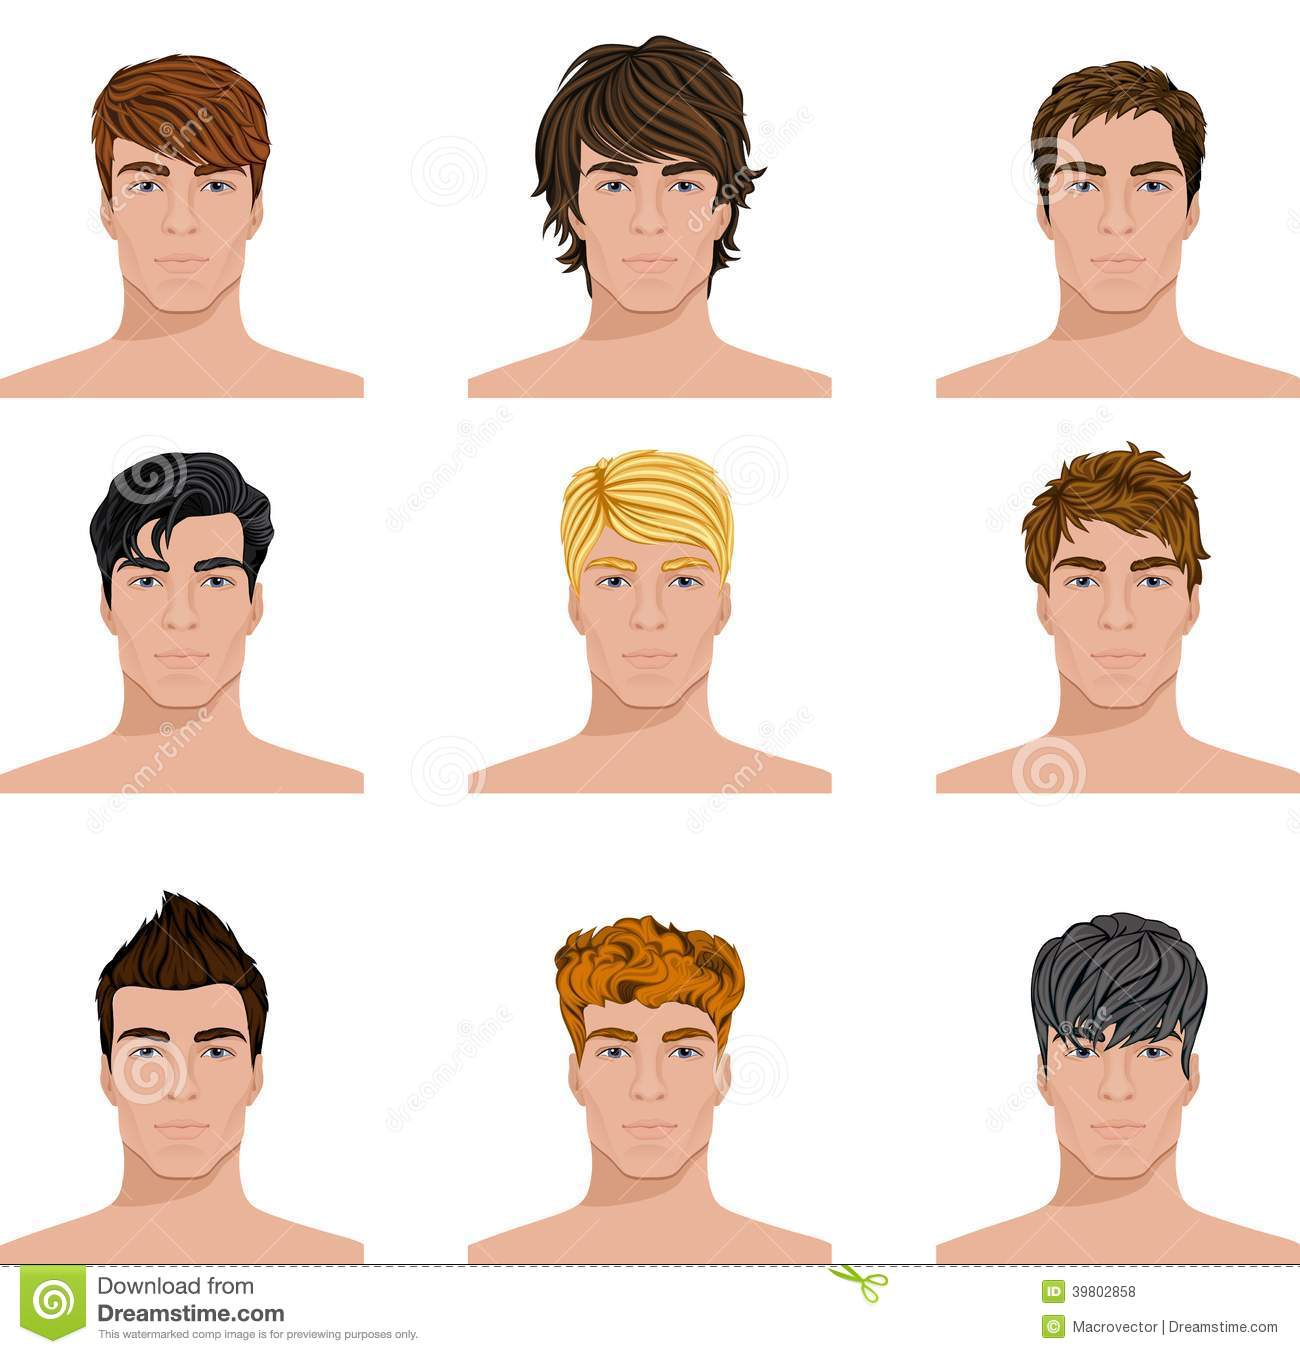 Hair Style Icons : different-hairstyle-men-faces-icons-set-close-up-hair-style-young ...